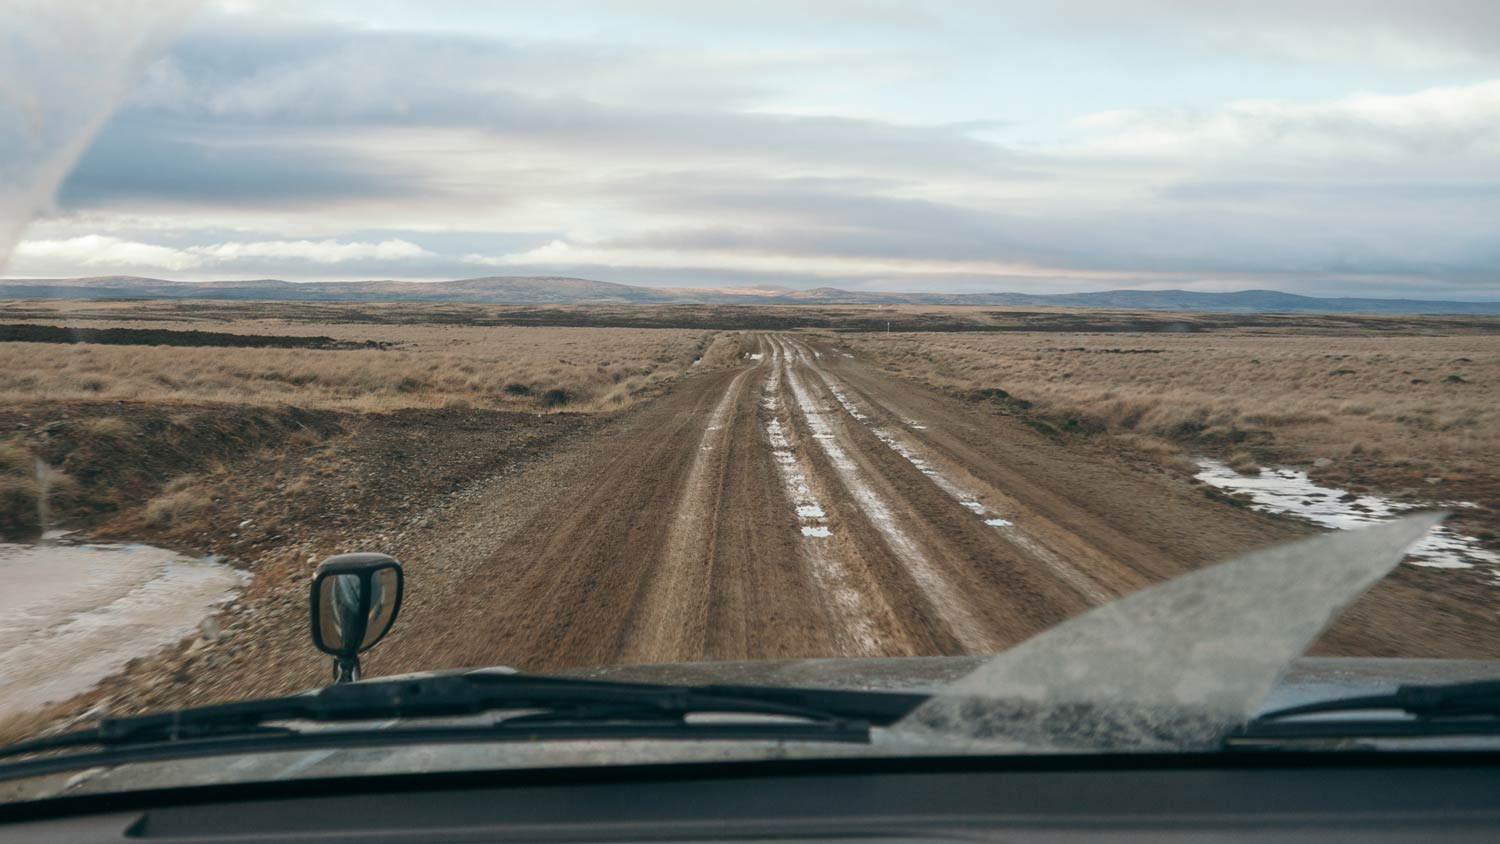 4 by 4 driving on a dirt road